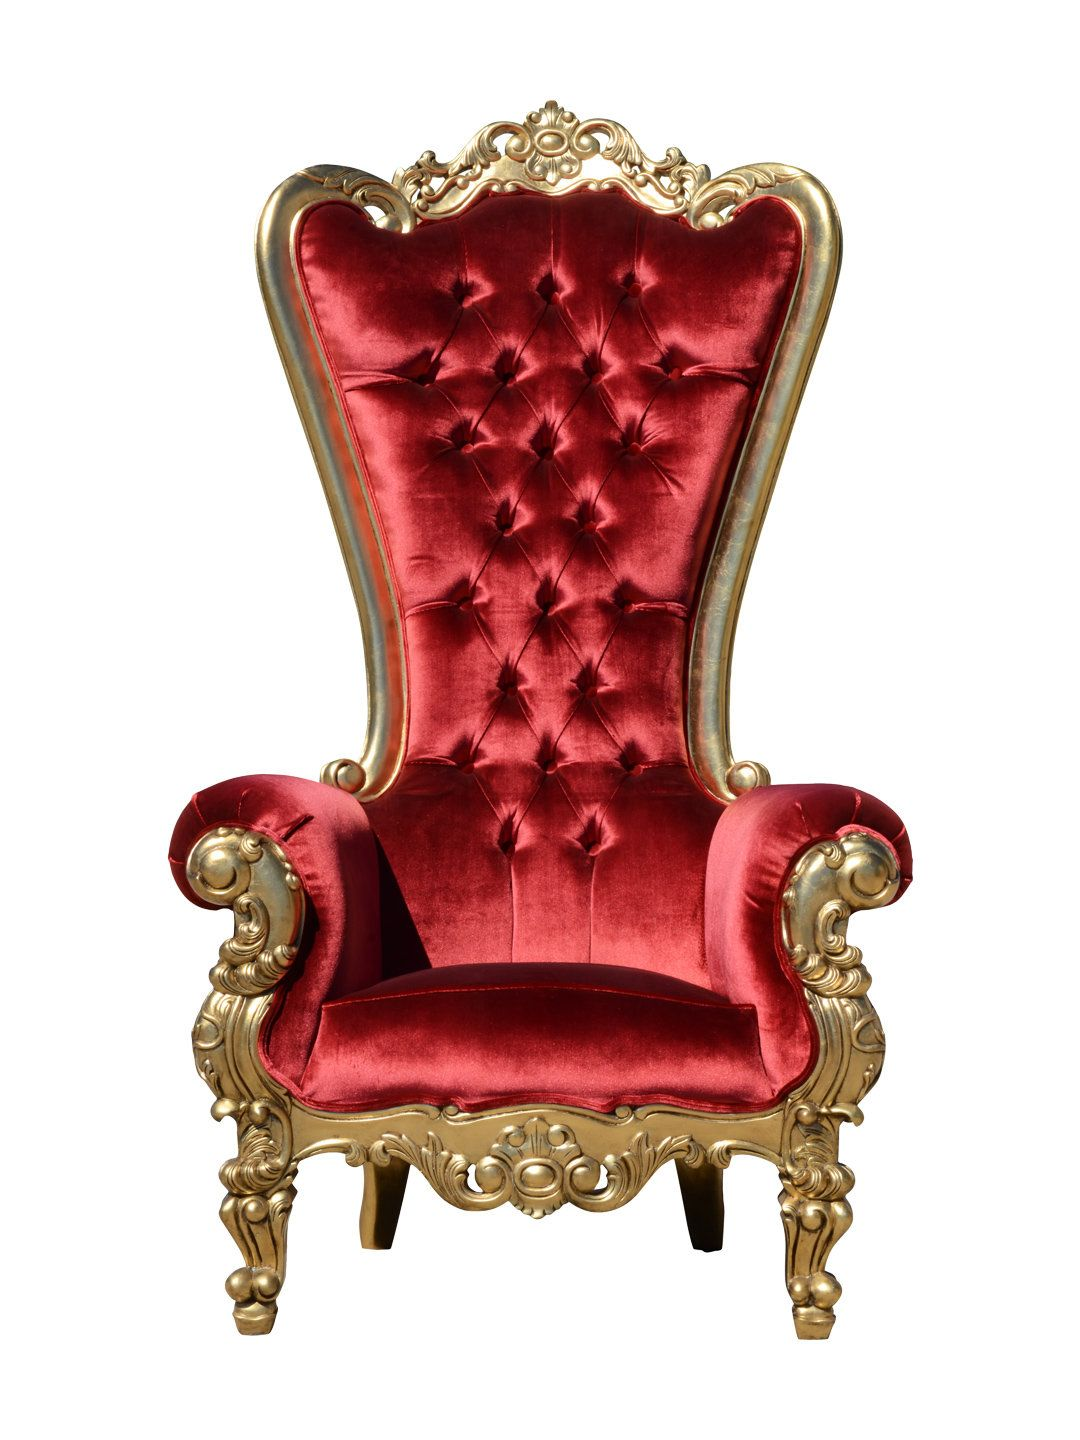 Fauteuil Confident Pas Cher absolom roche chairfabulous & baroque at gilt (with